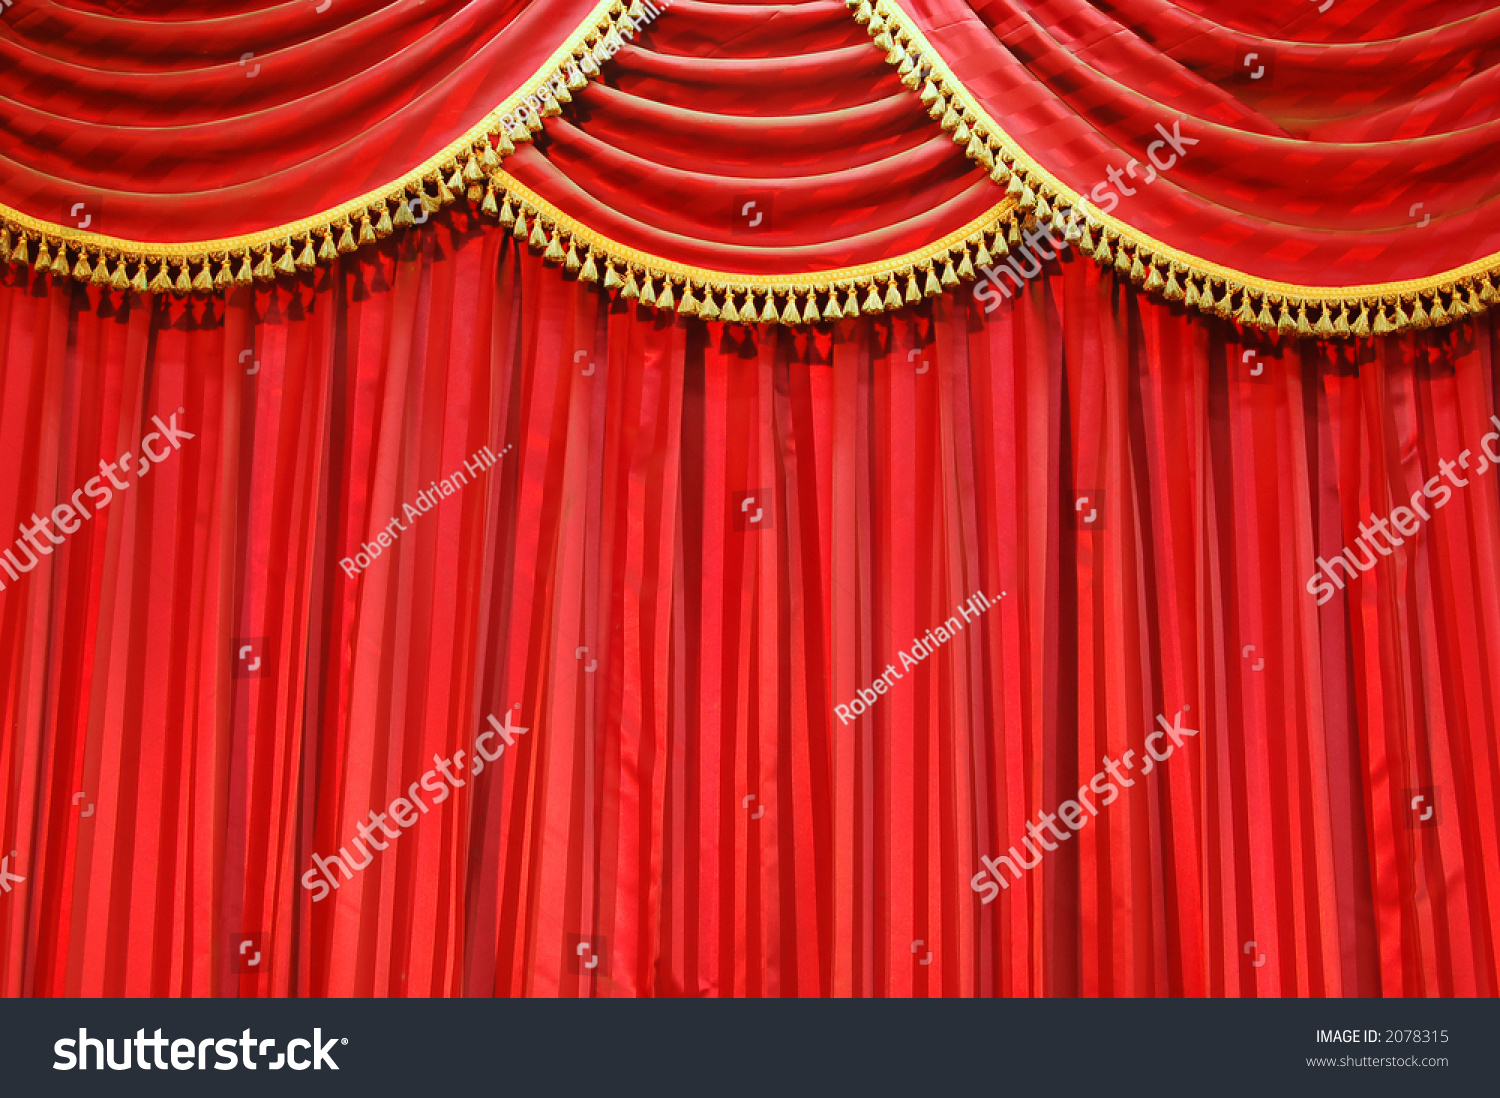 Closed theater curtains - Background Of Red Velvet Closed Theatre Curtains